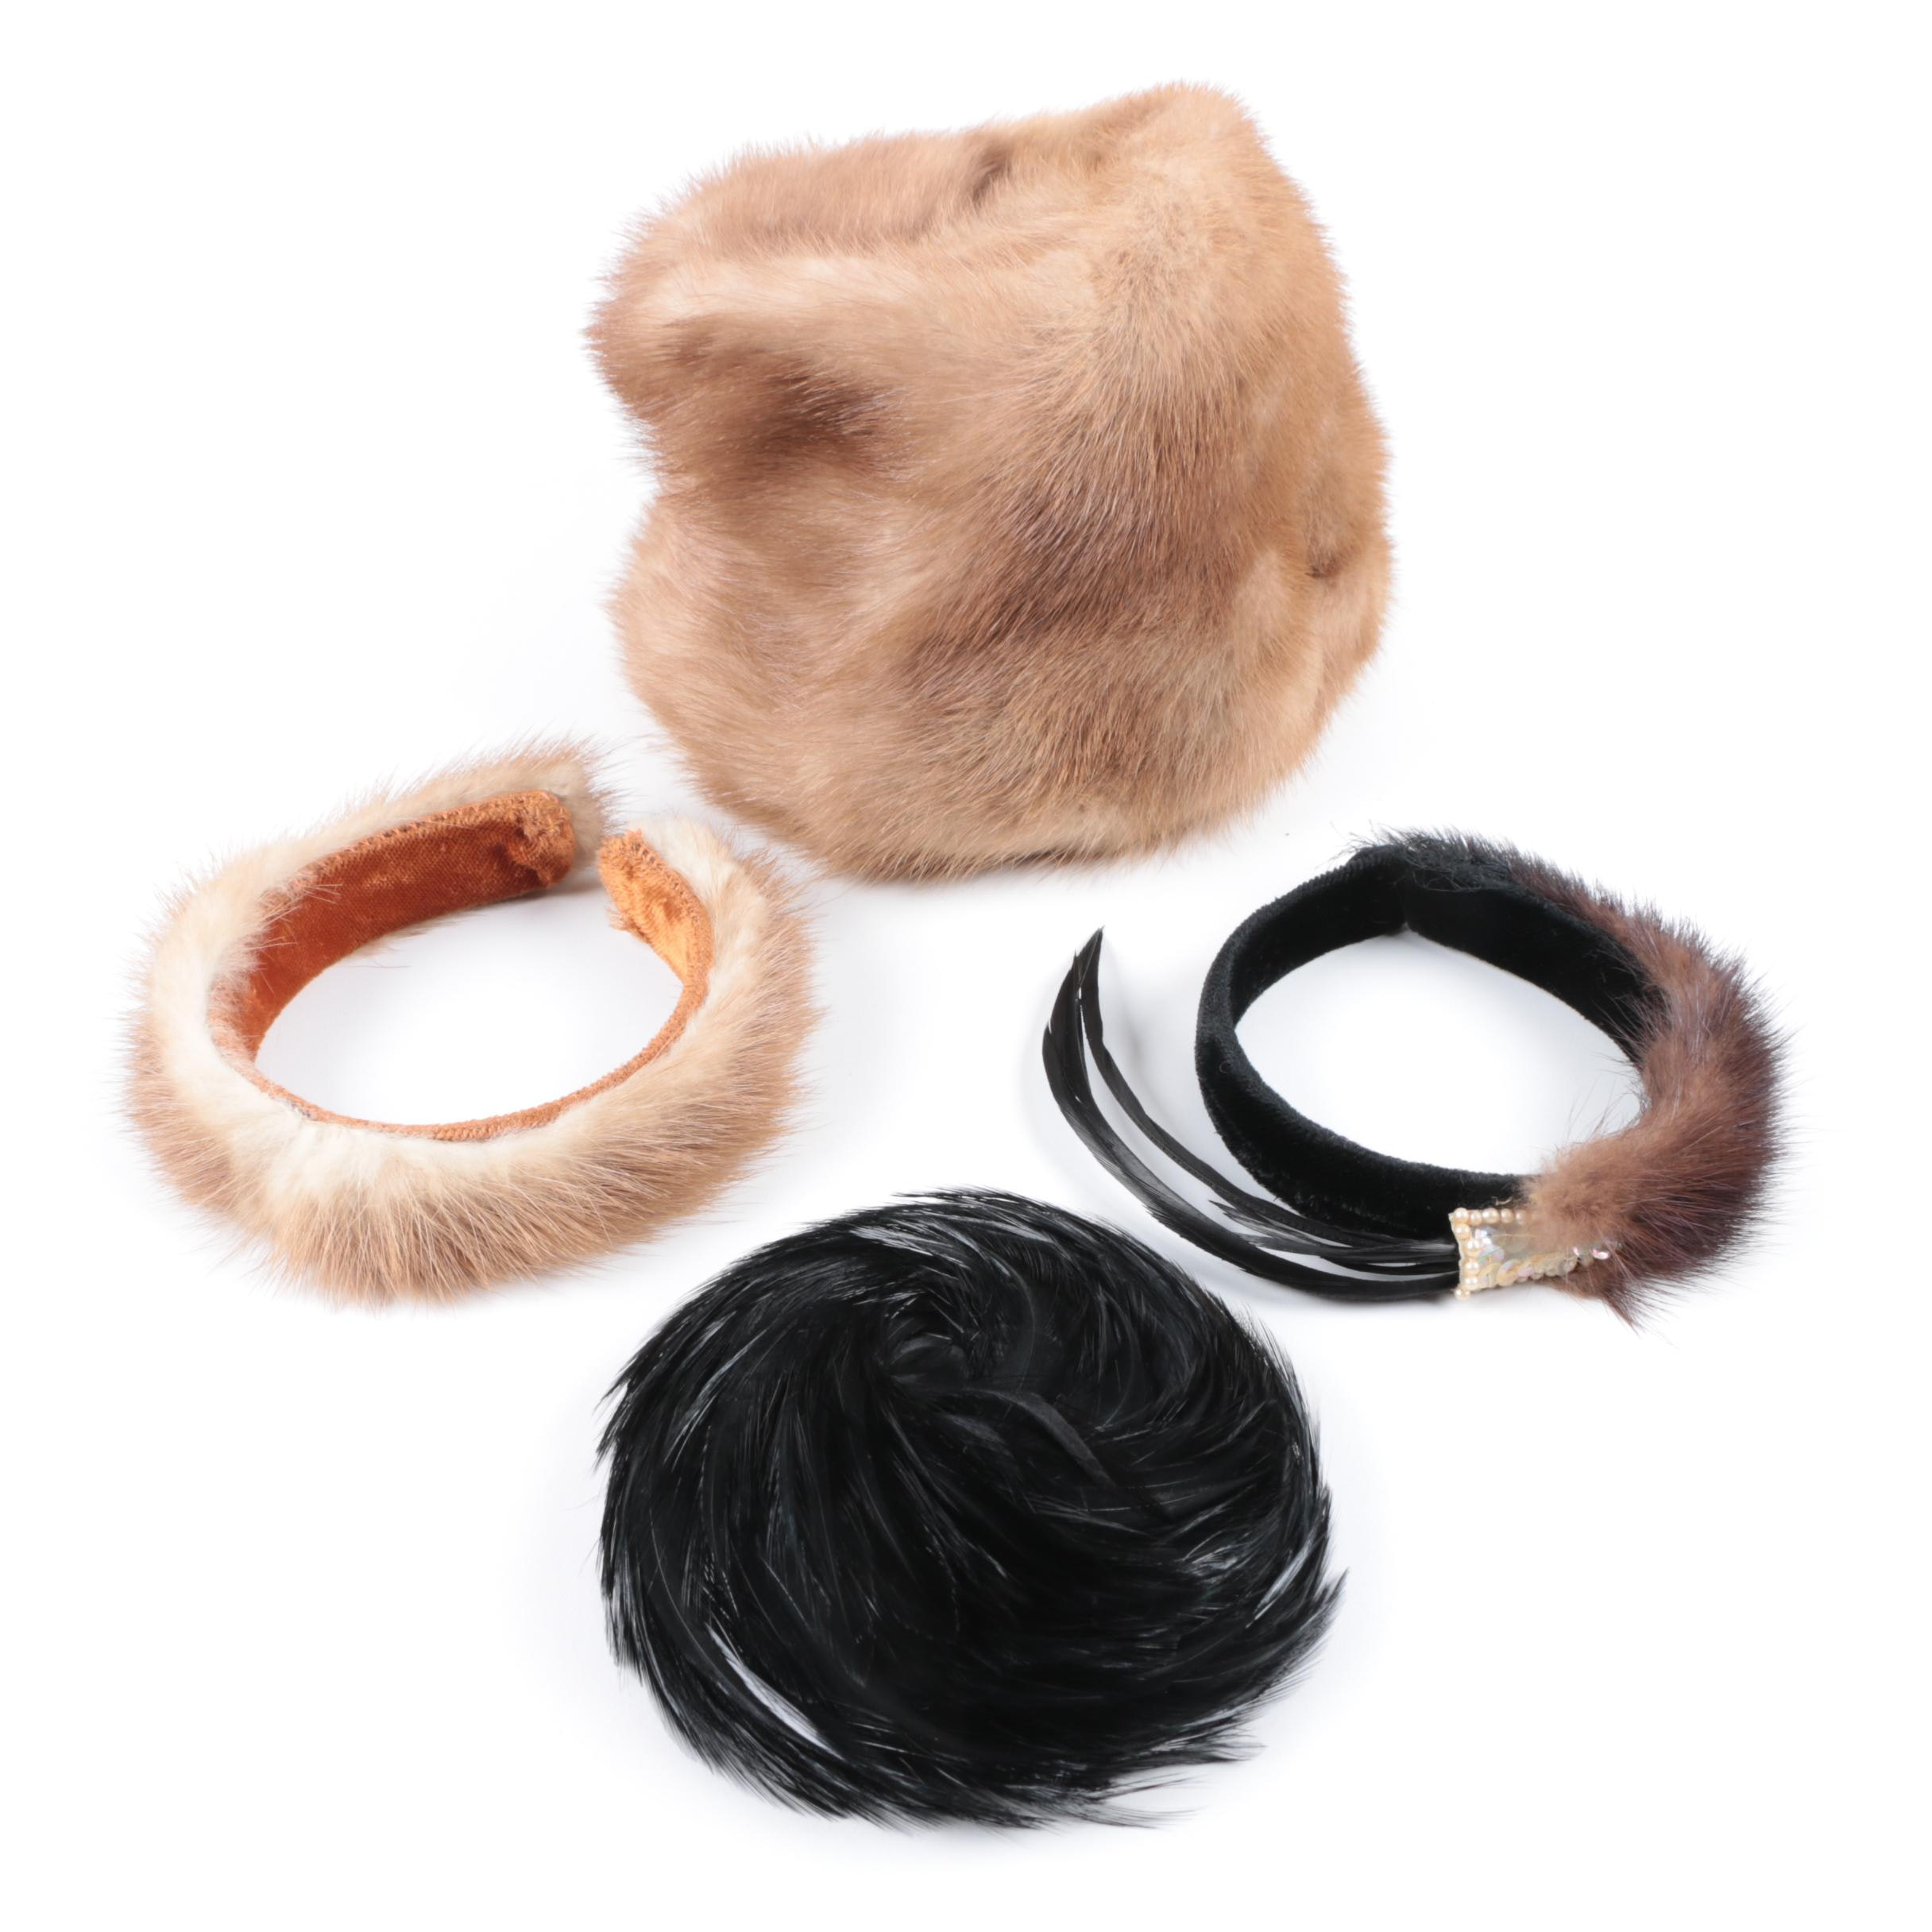 Vintage Mink Fur and Feather Accessories